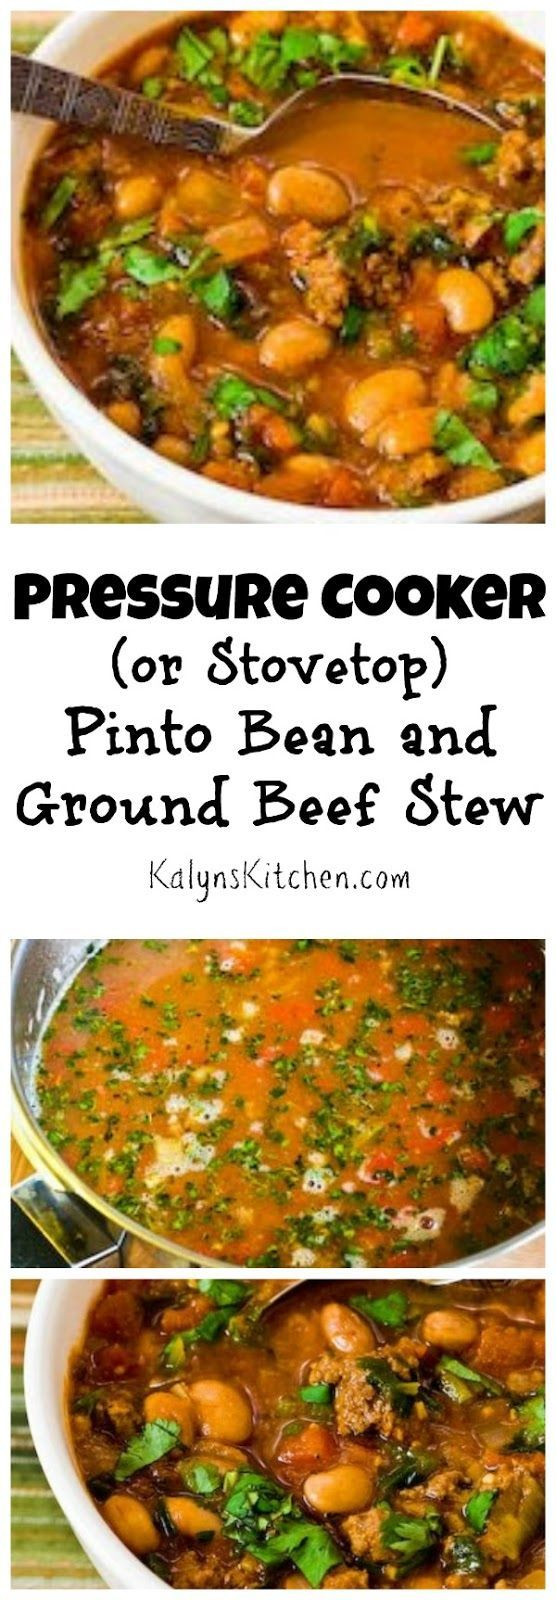 This delicious and easy-to-make  Pressure Cooker Pinto Bean and Ground Beef Stew with Cumin and Cilantro has been a big hit on the blog. The recipe also has instructions for cooking it on the stove. Don't call this chili; there's no chile powder here! [from KalynsKitchen.com}